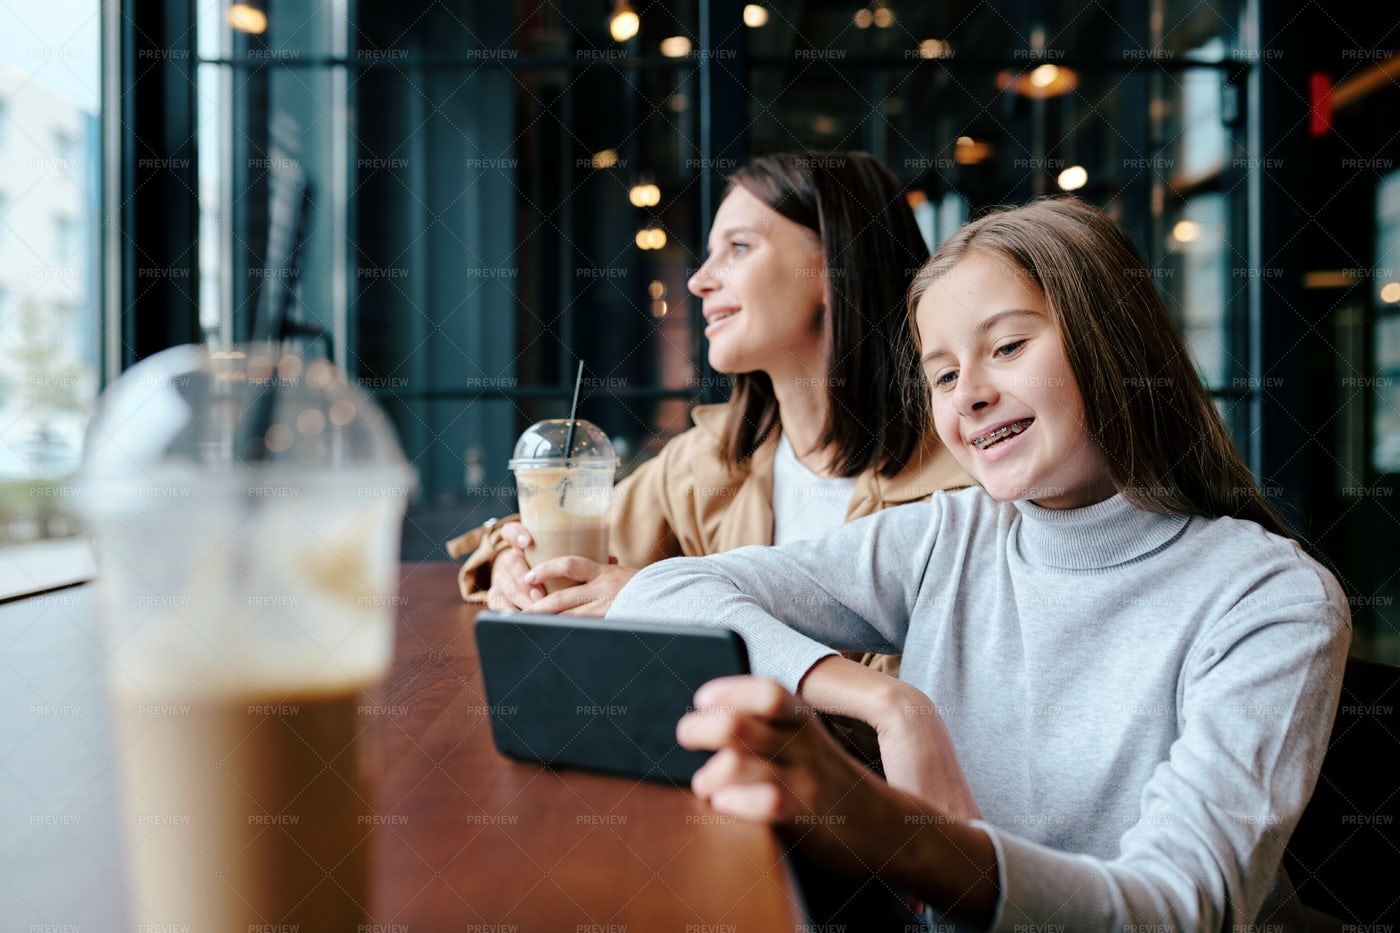 Cheerful Girl Watching Funny Video...: Stock Photos